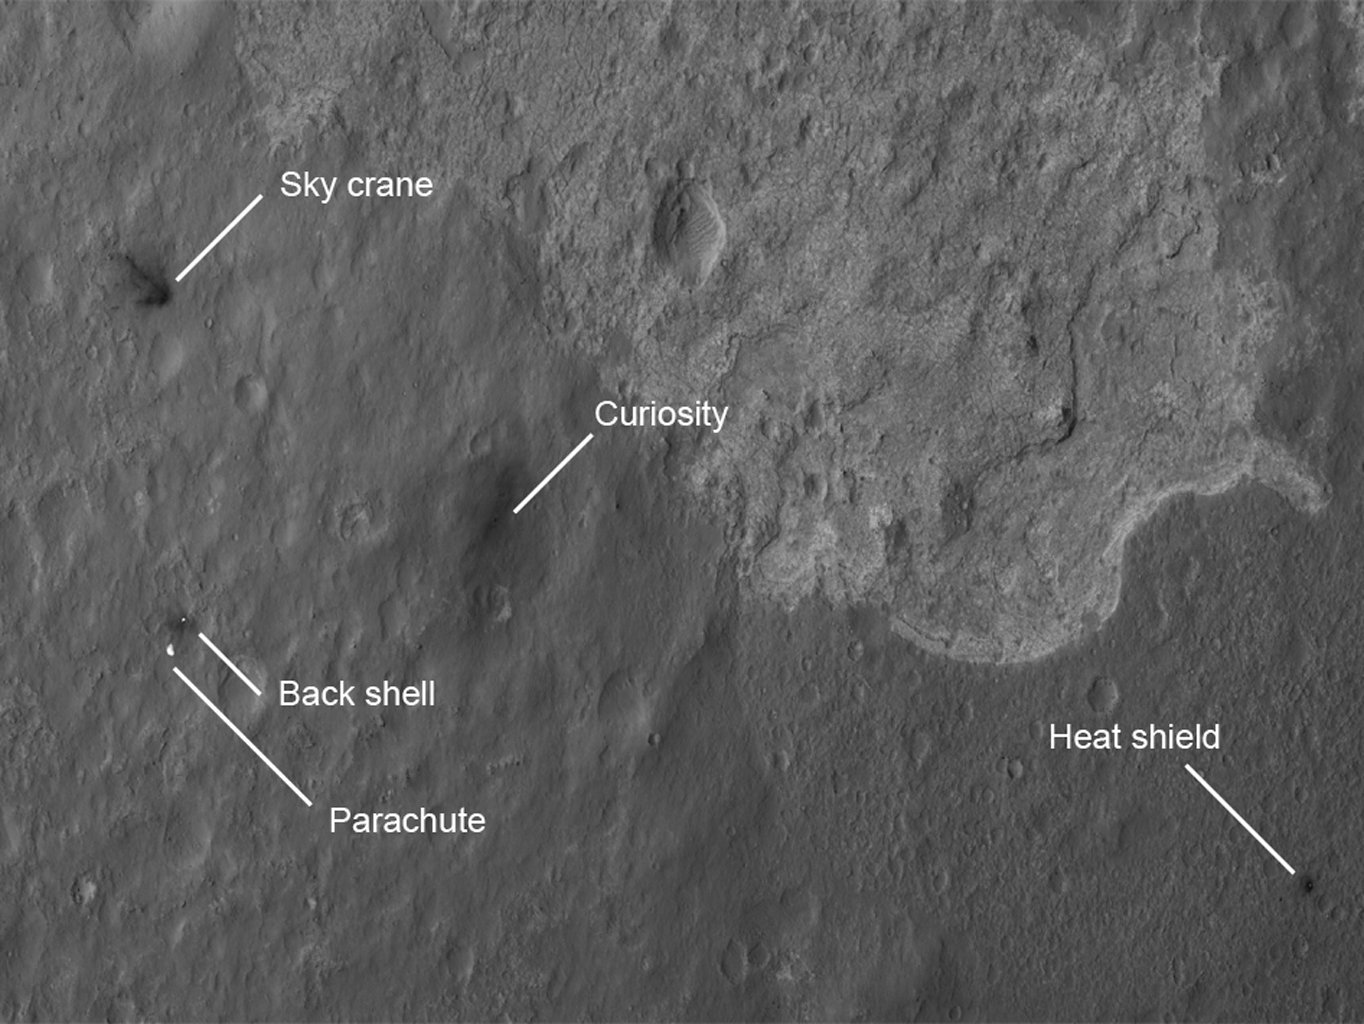 The four main pieces of hardware that arrived on Mars with NASA's Curiosity rover were spotted by NASA's Mars Reconnaissance Orbiter (MRO) which captured this image about 24 hours after landing.